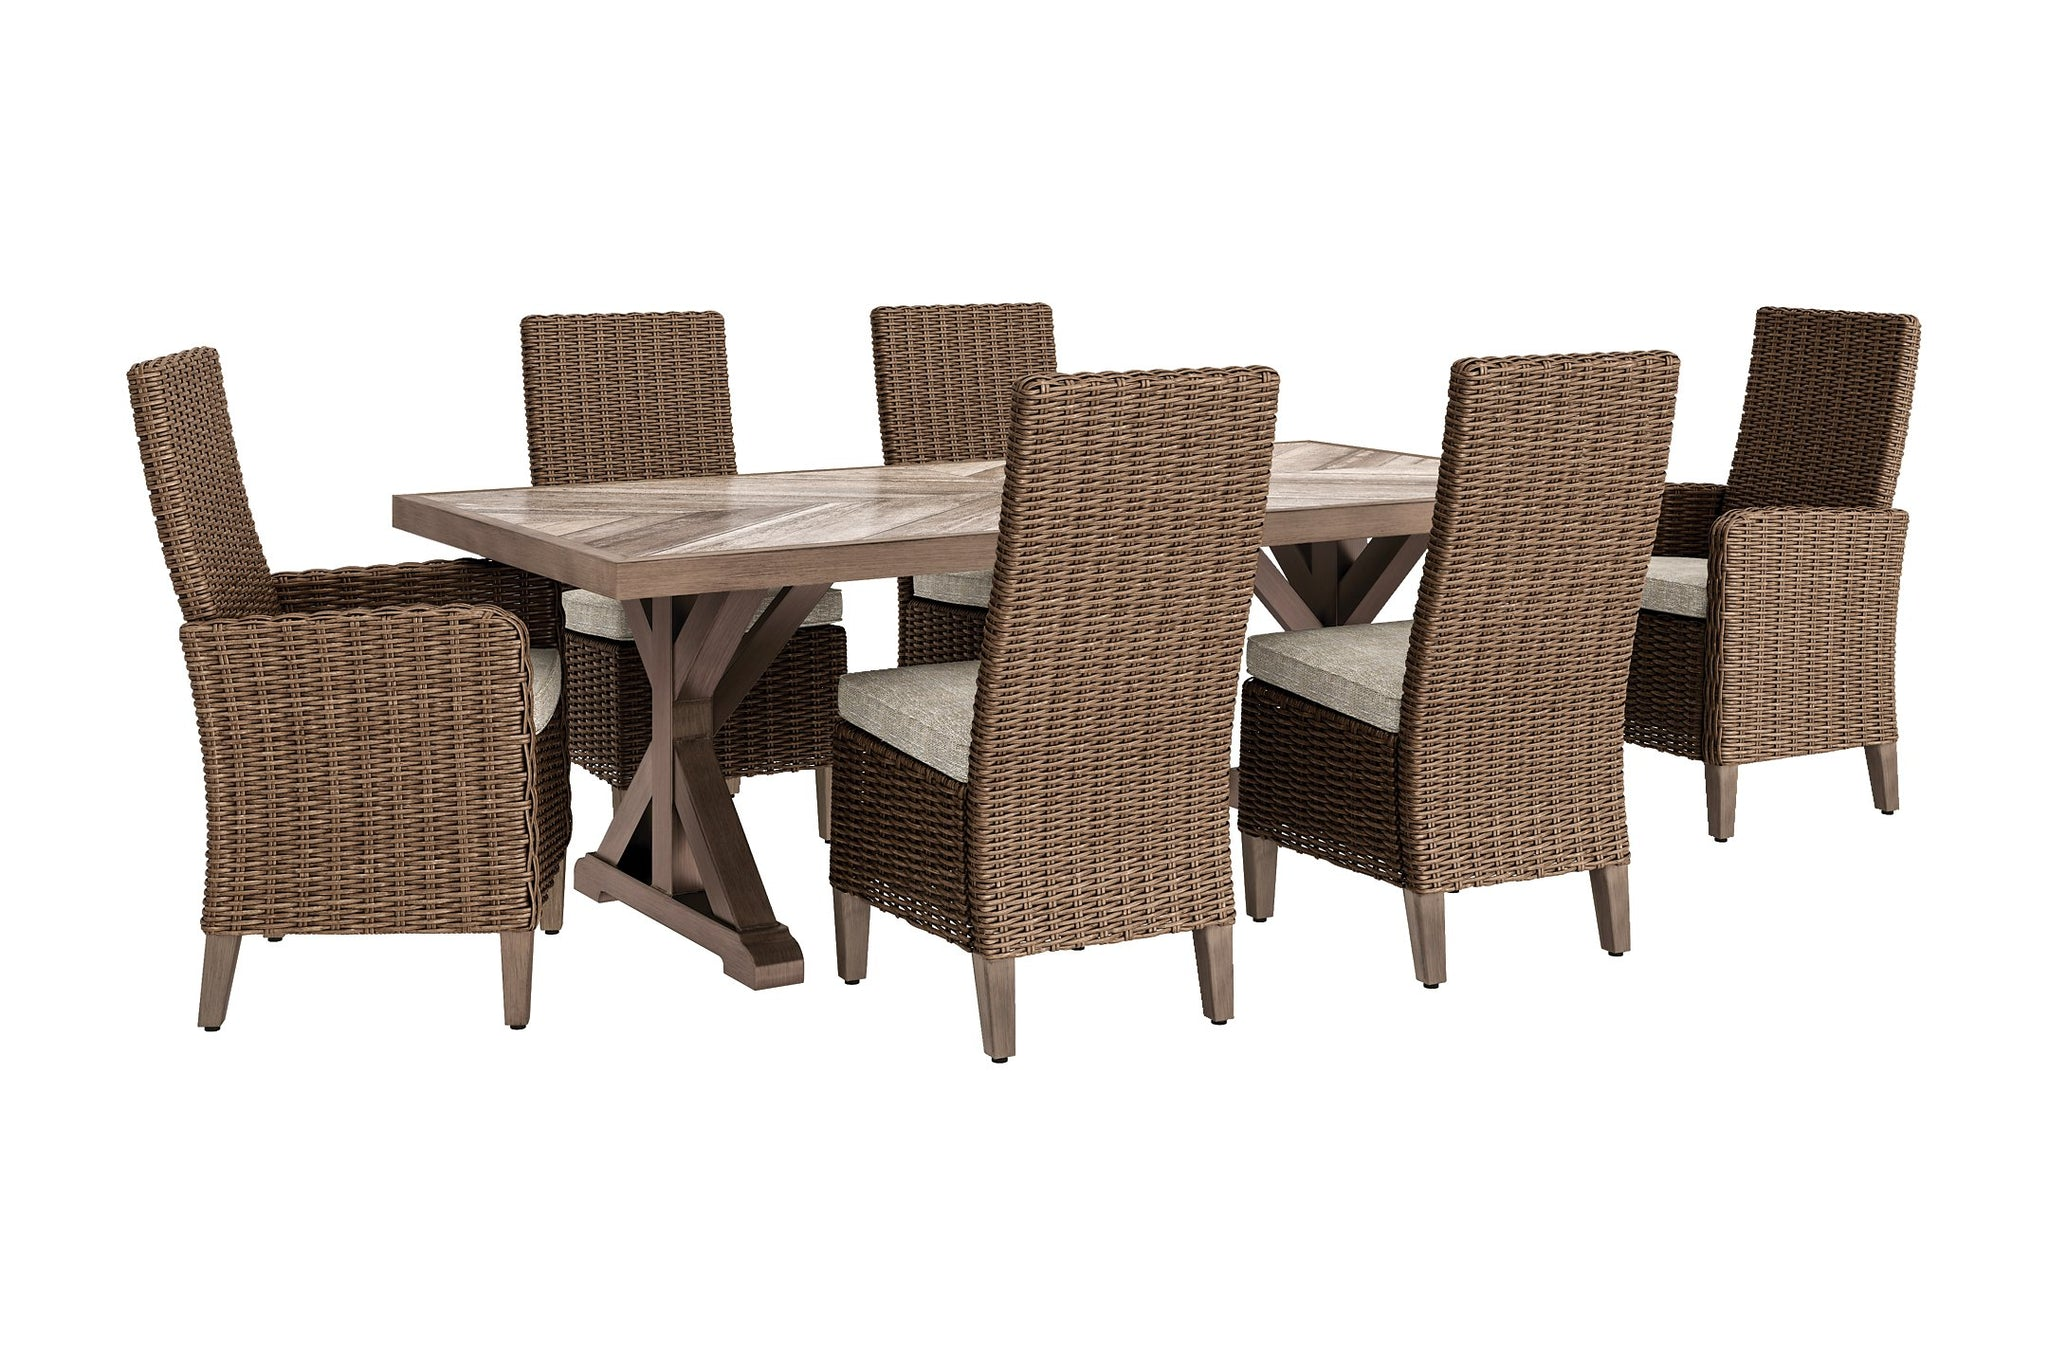 Beachcroft Signature Design 7-Piece Outdoor Dining Set image